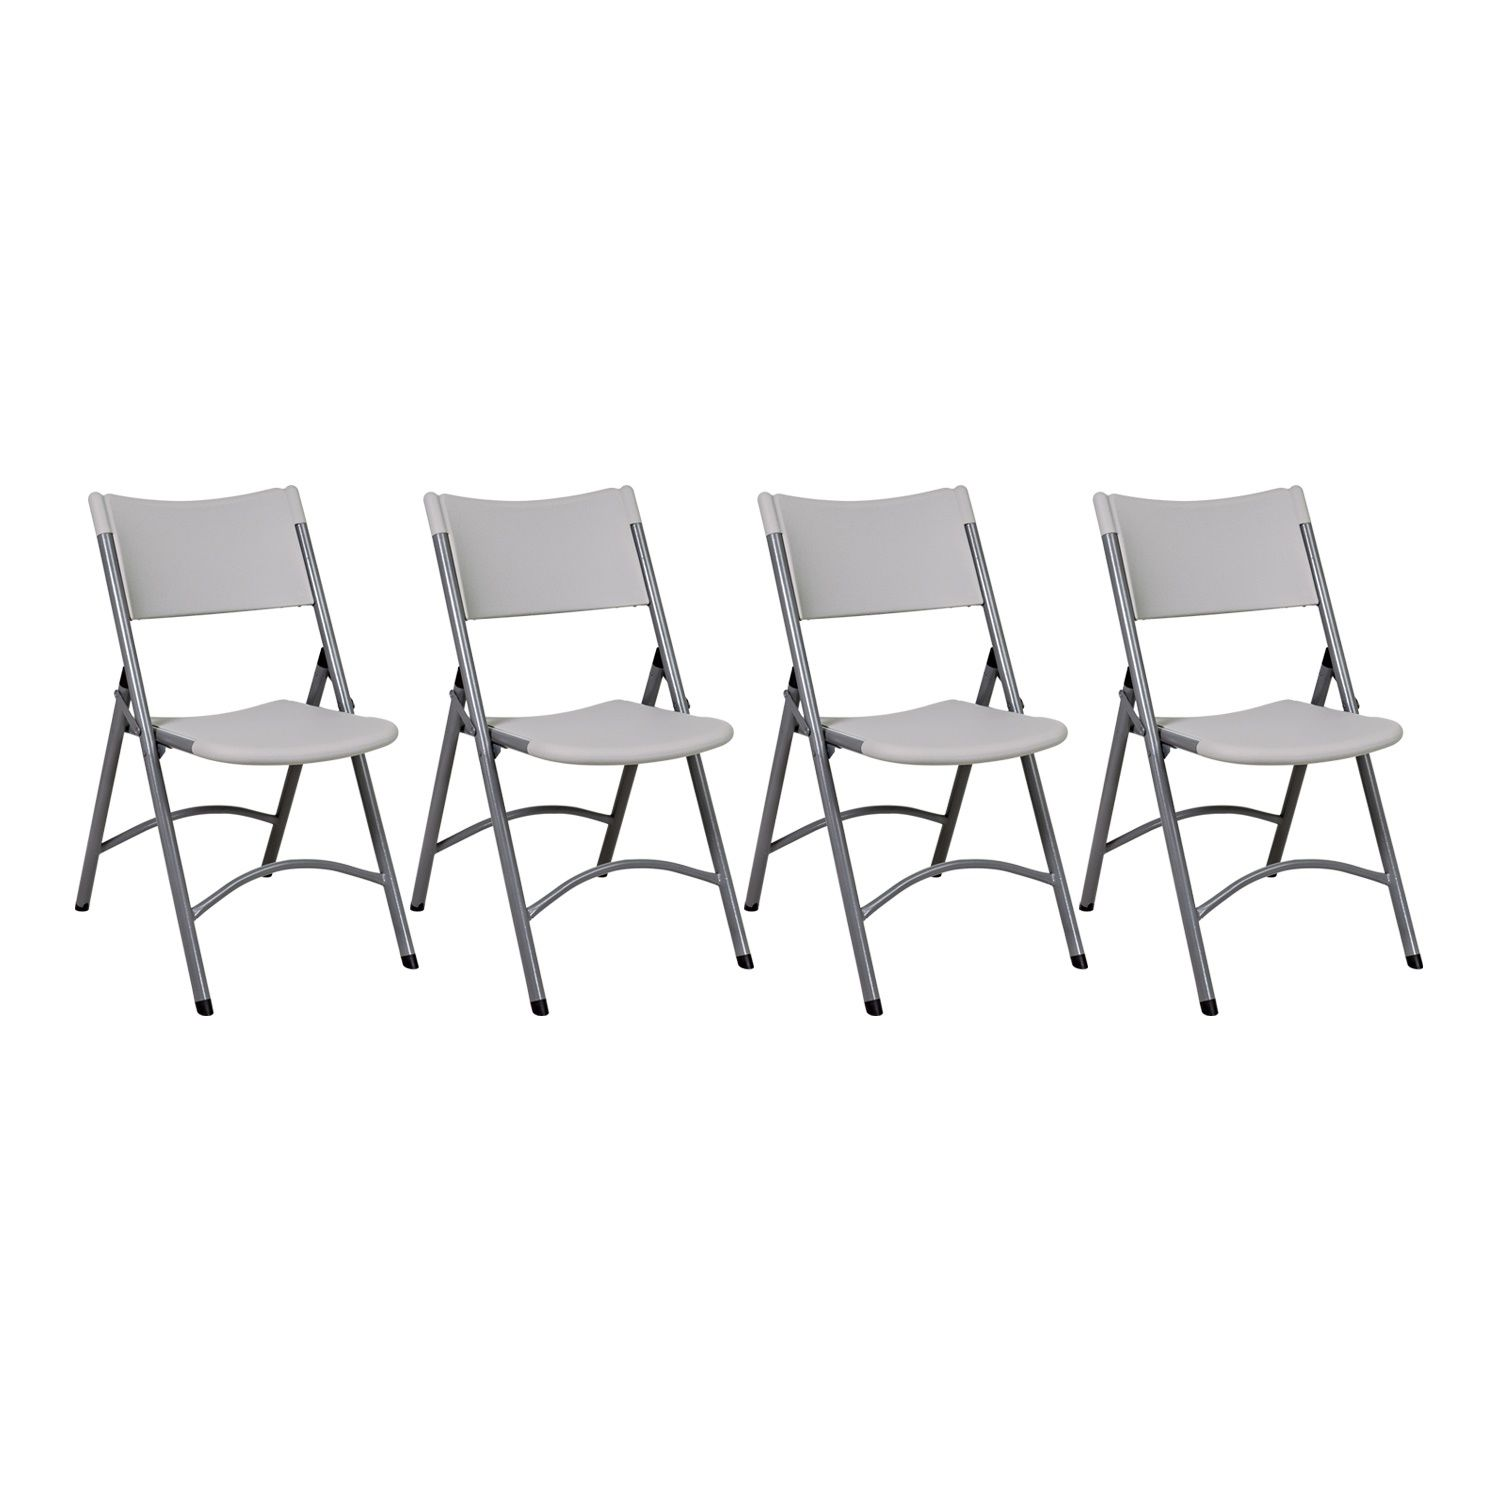 Folding Chairs  Chairs Furniture  Kohls